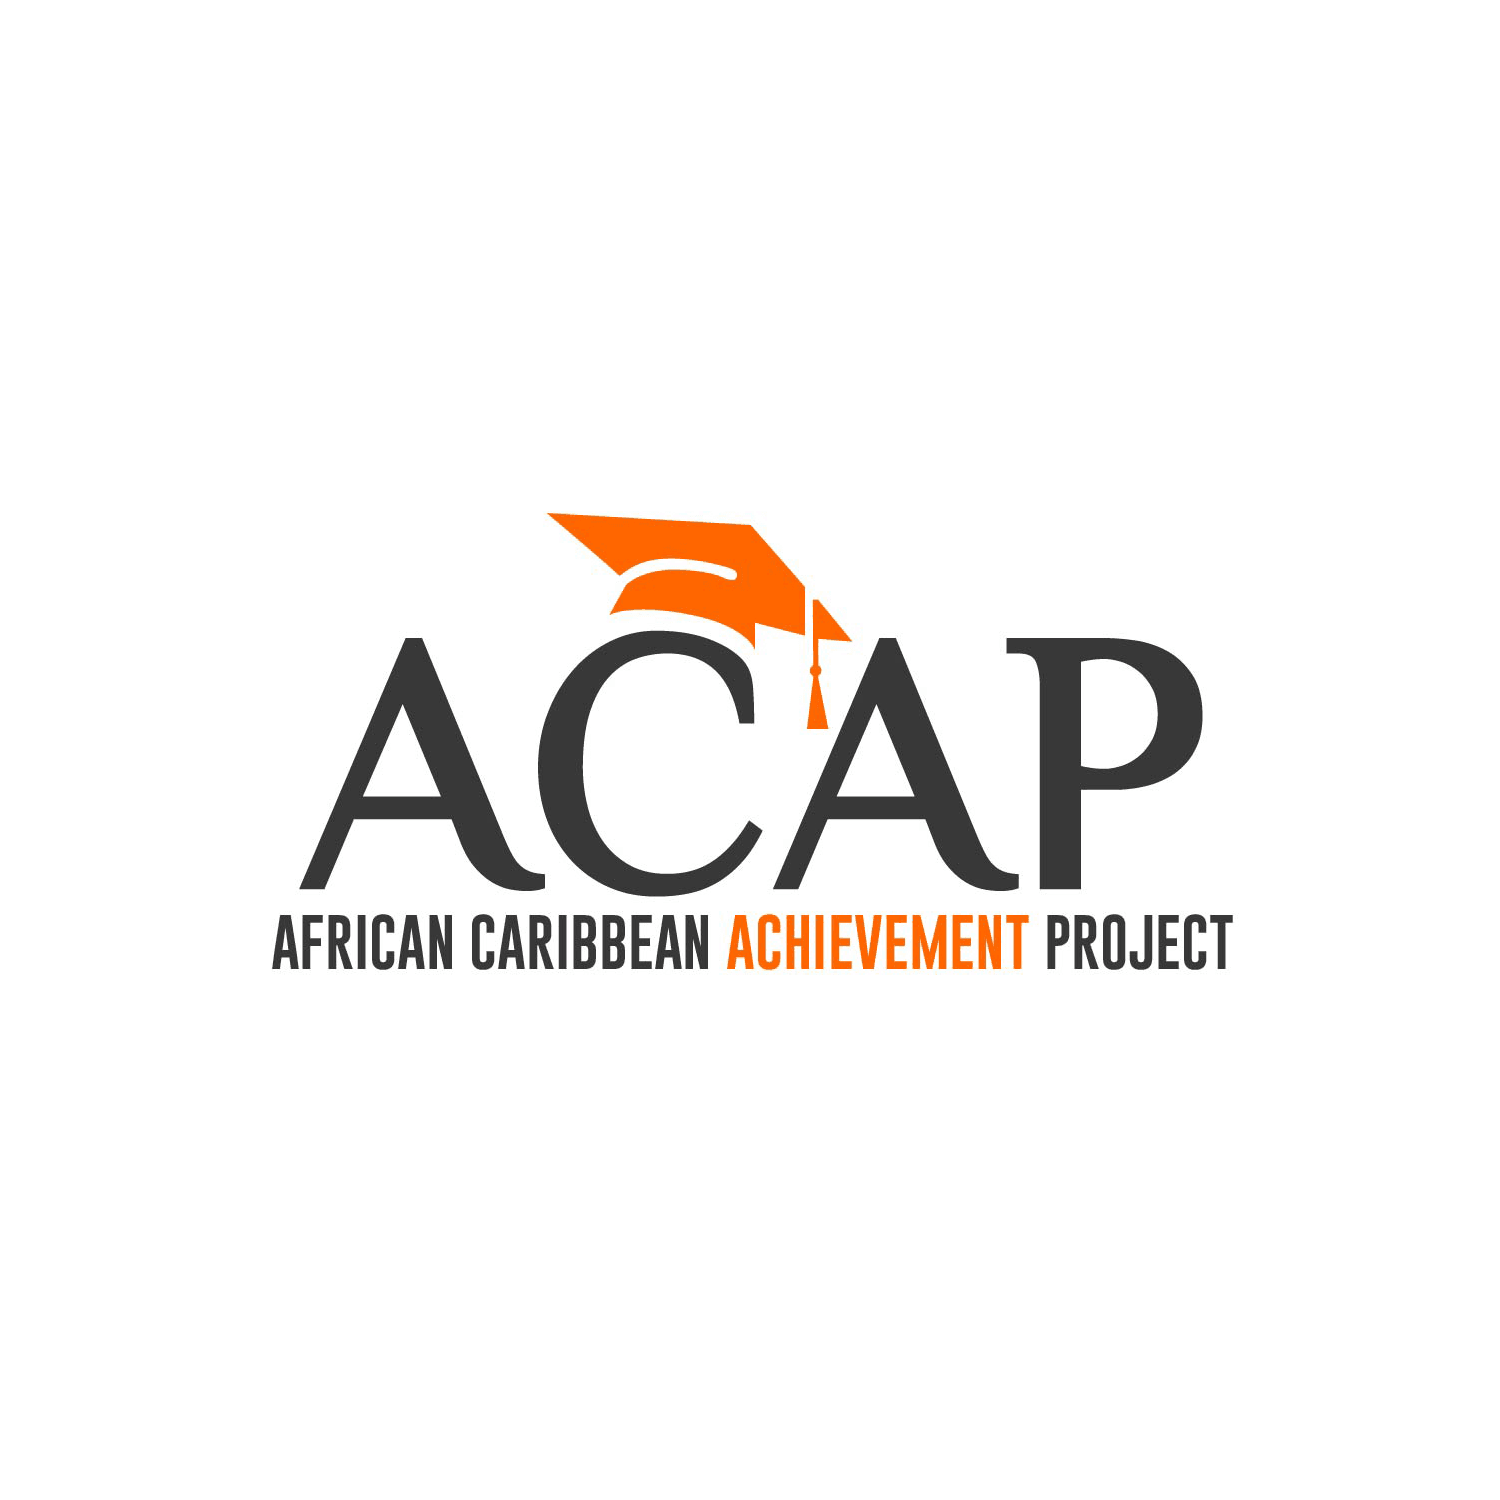 African Caribbean Achievement Project